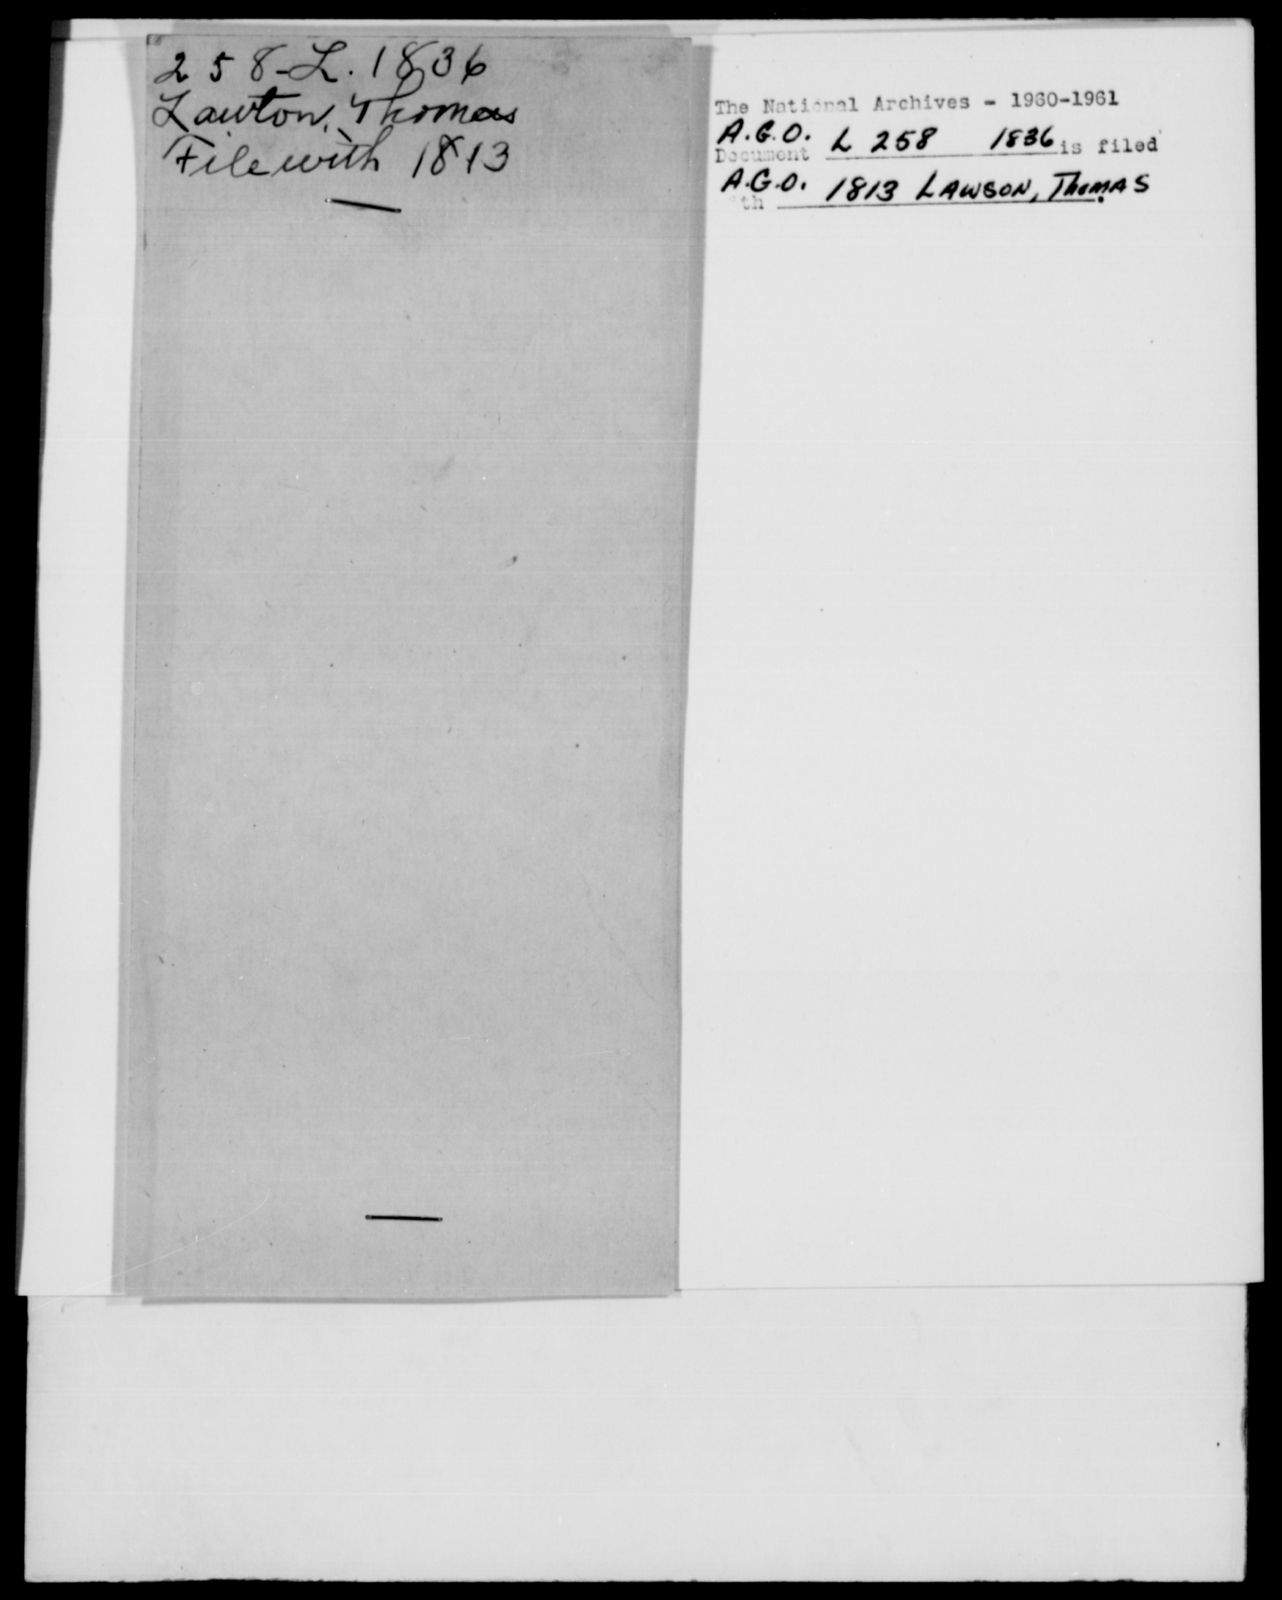 Leadbetter, D - State: New York - Year: 1836 - File Number: L258